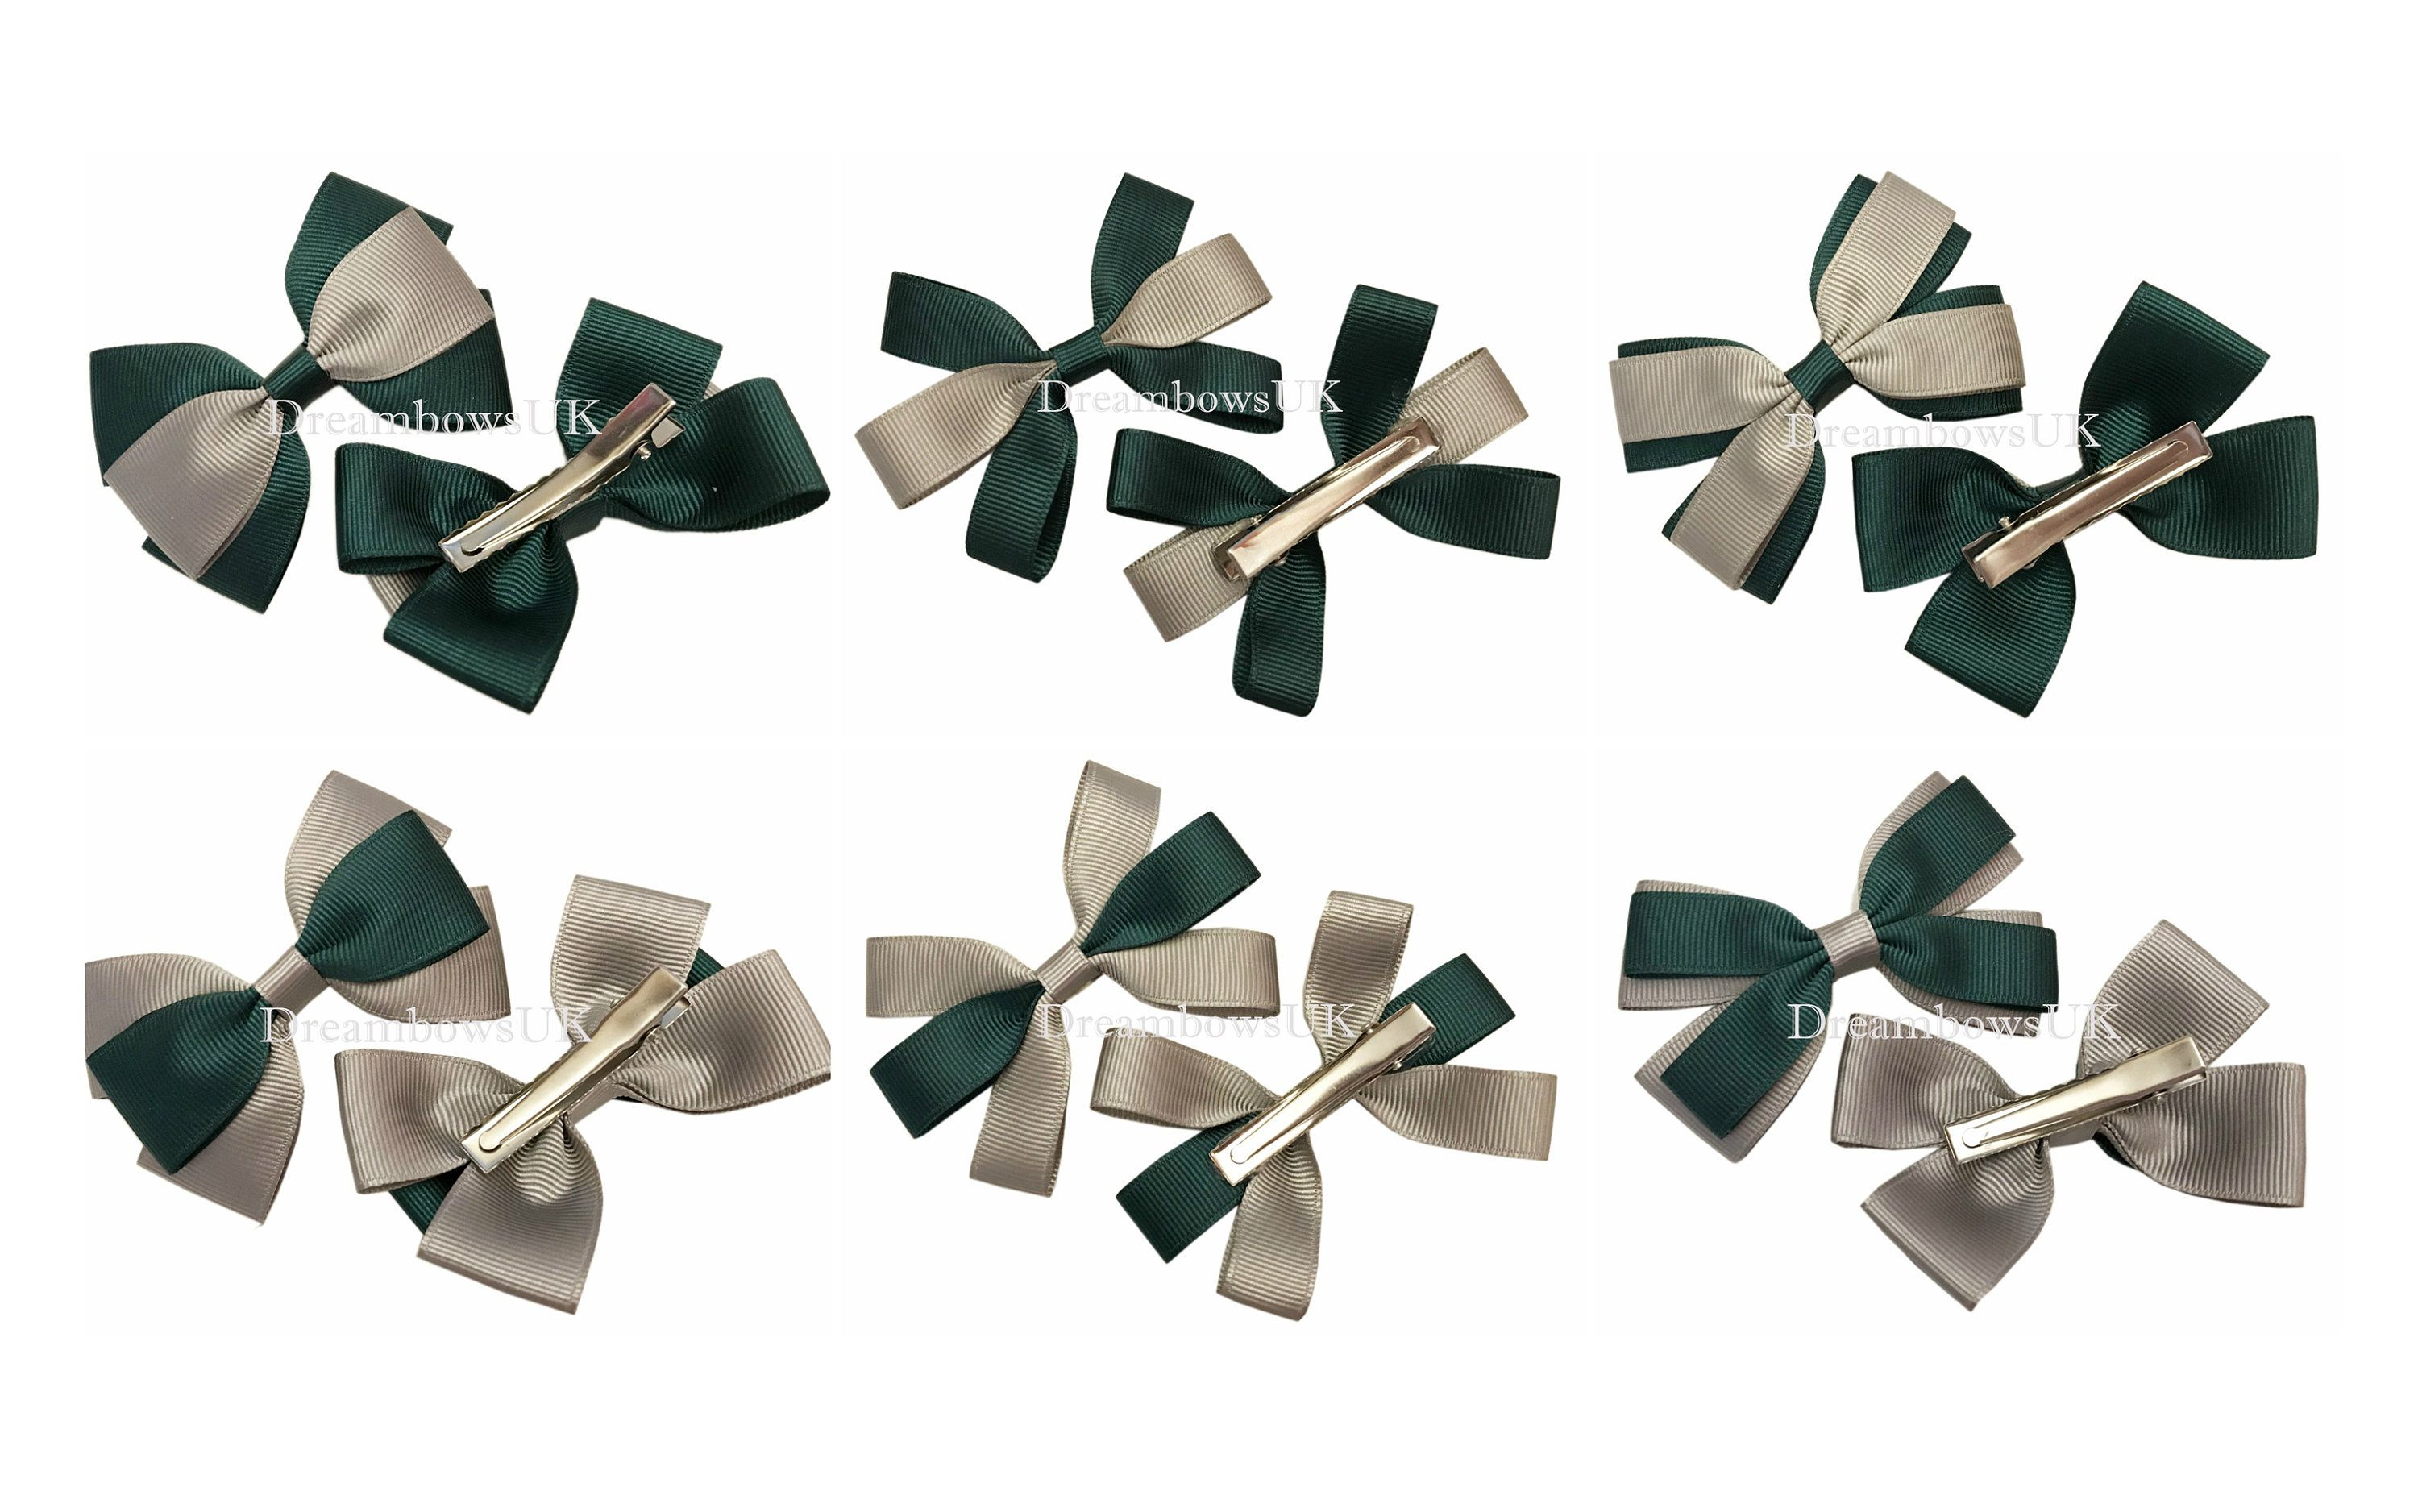 Bottle green and golden yellow school hair bows on alligator clips or bobbles